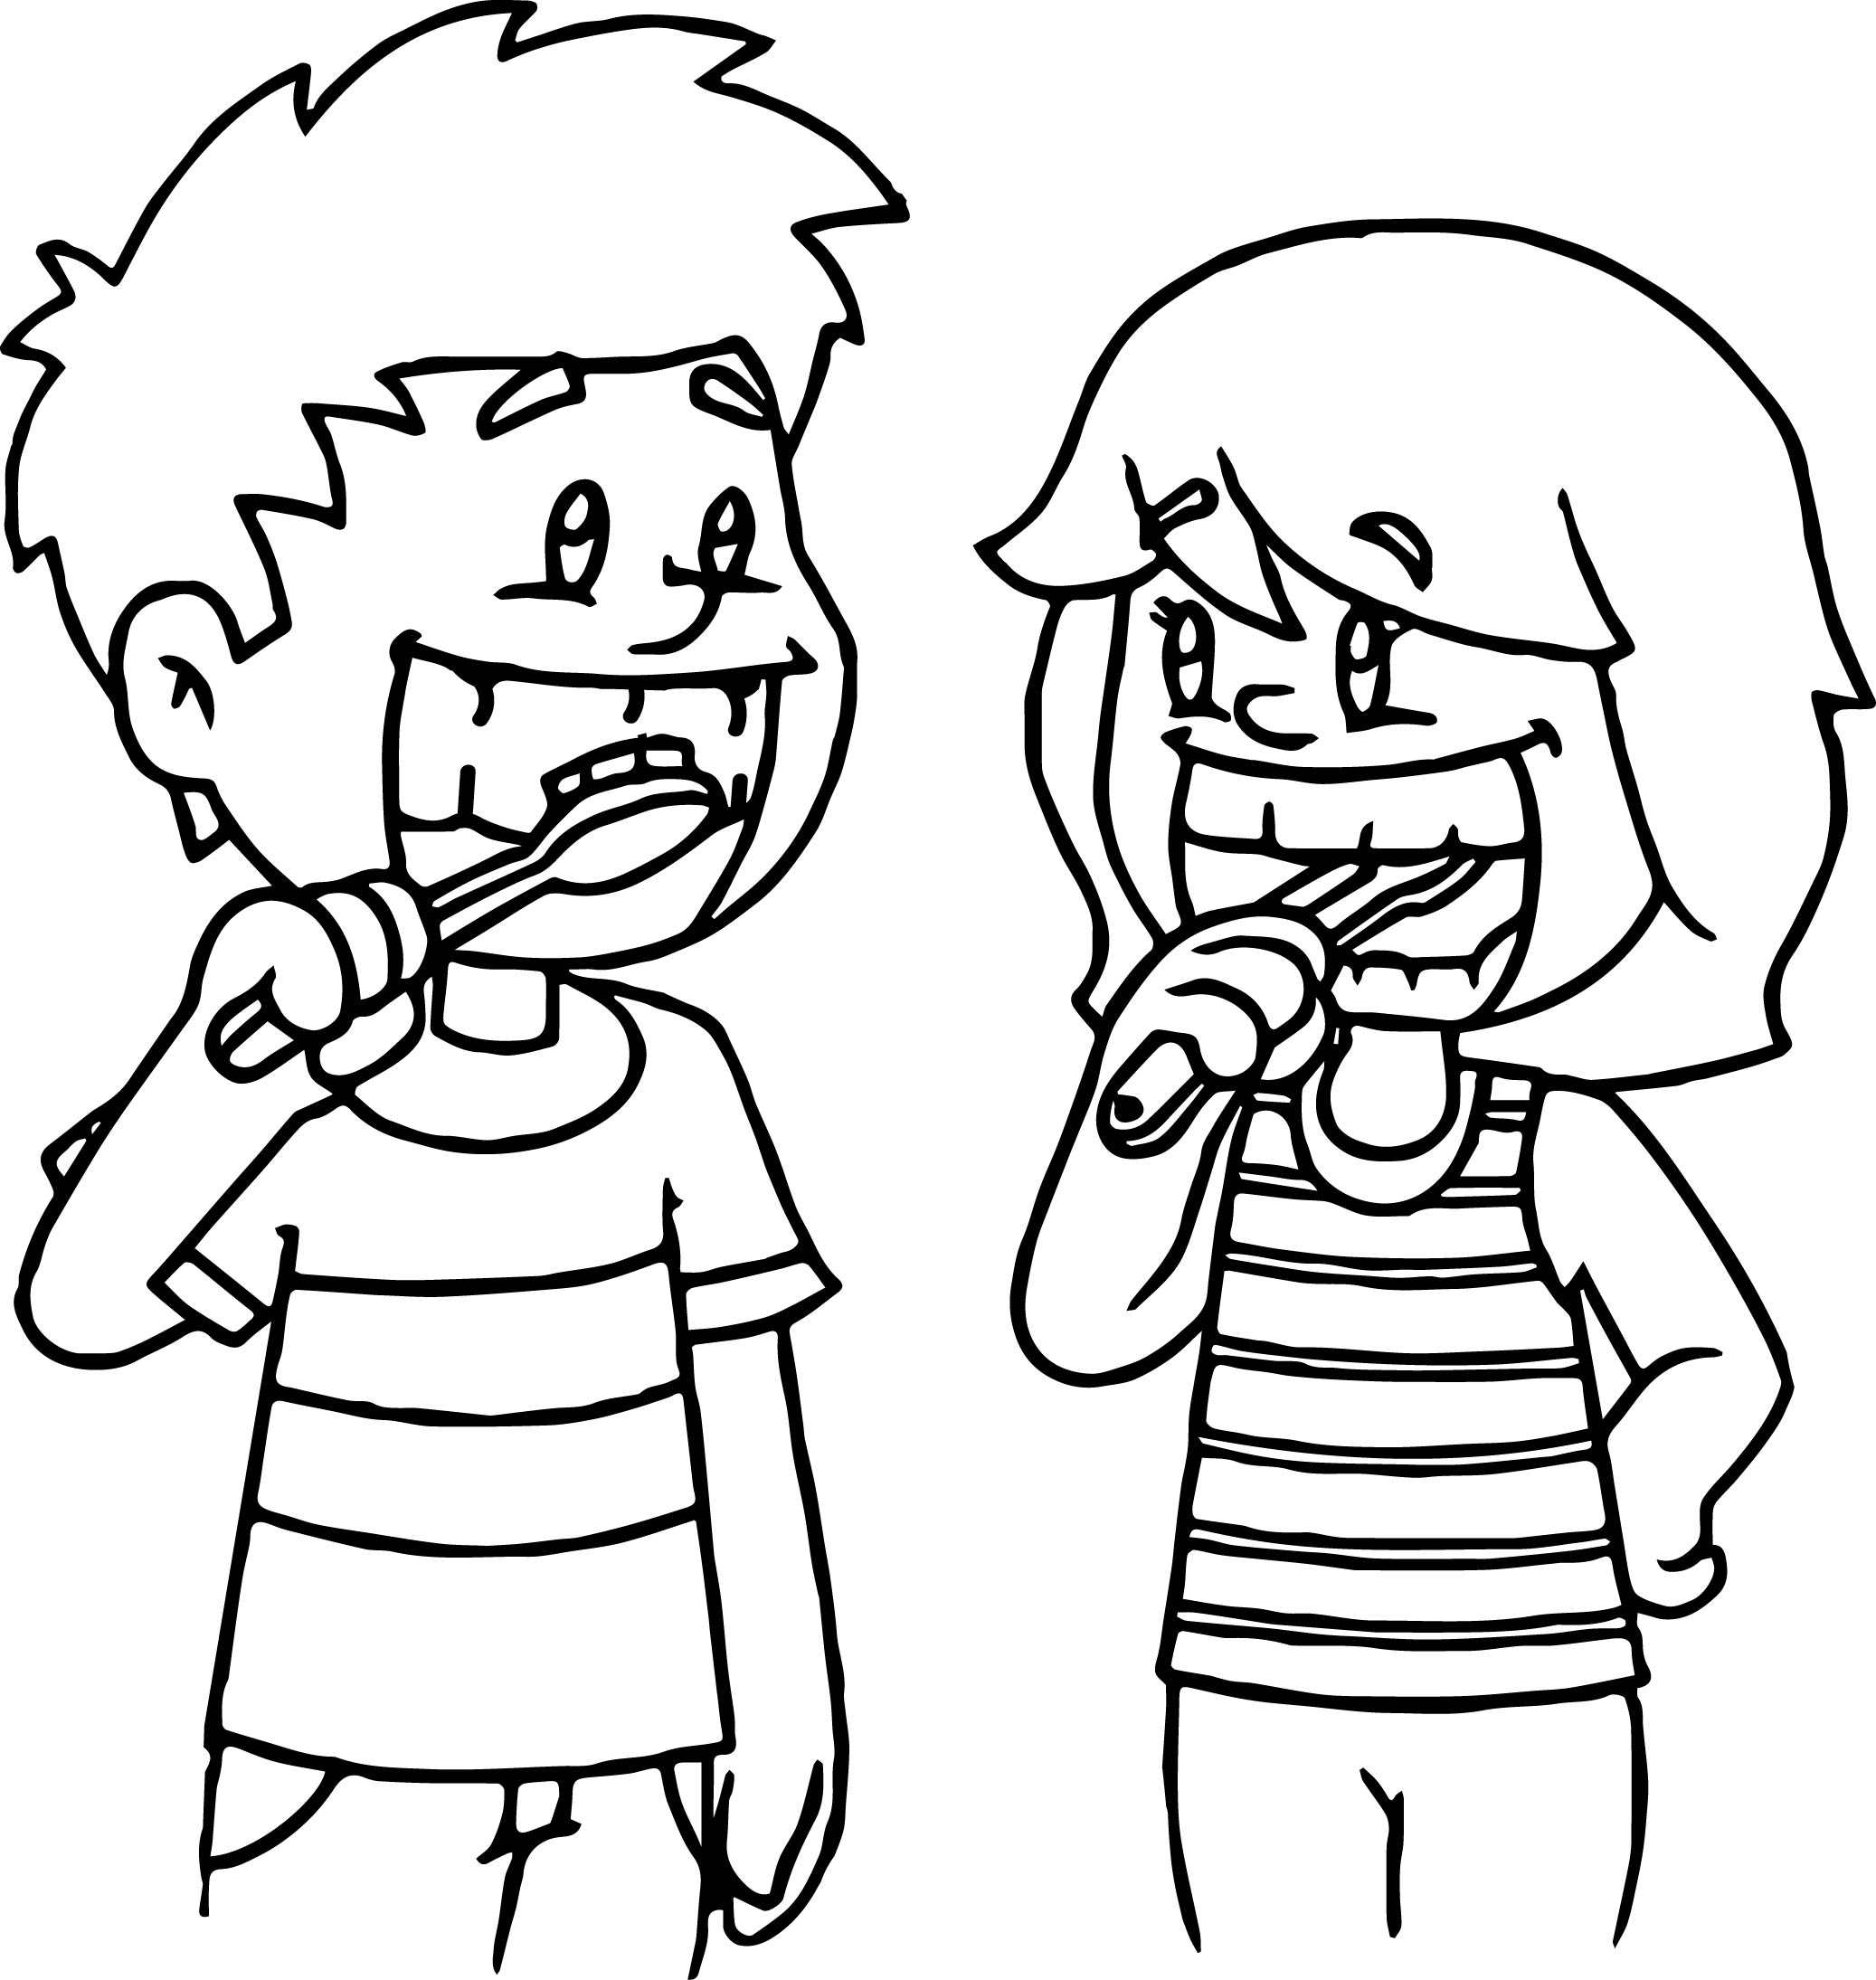 Kids Brushing Teeth Coloring Page